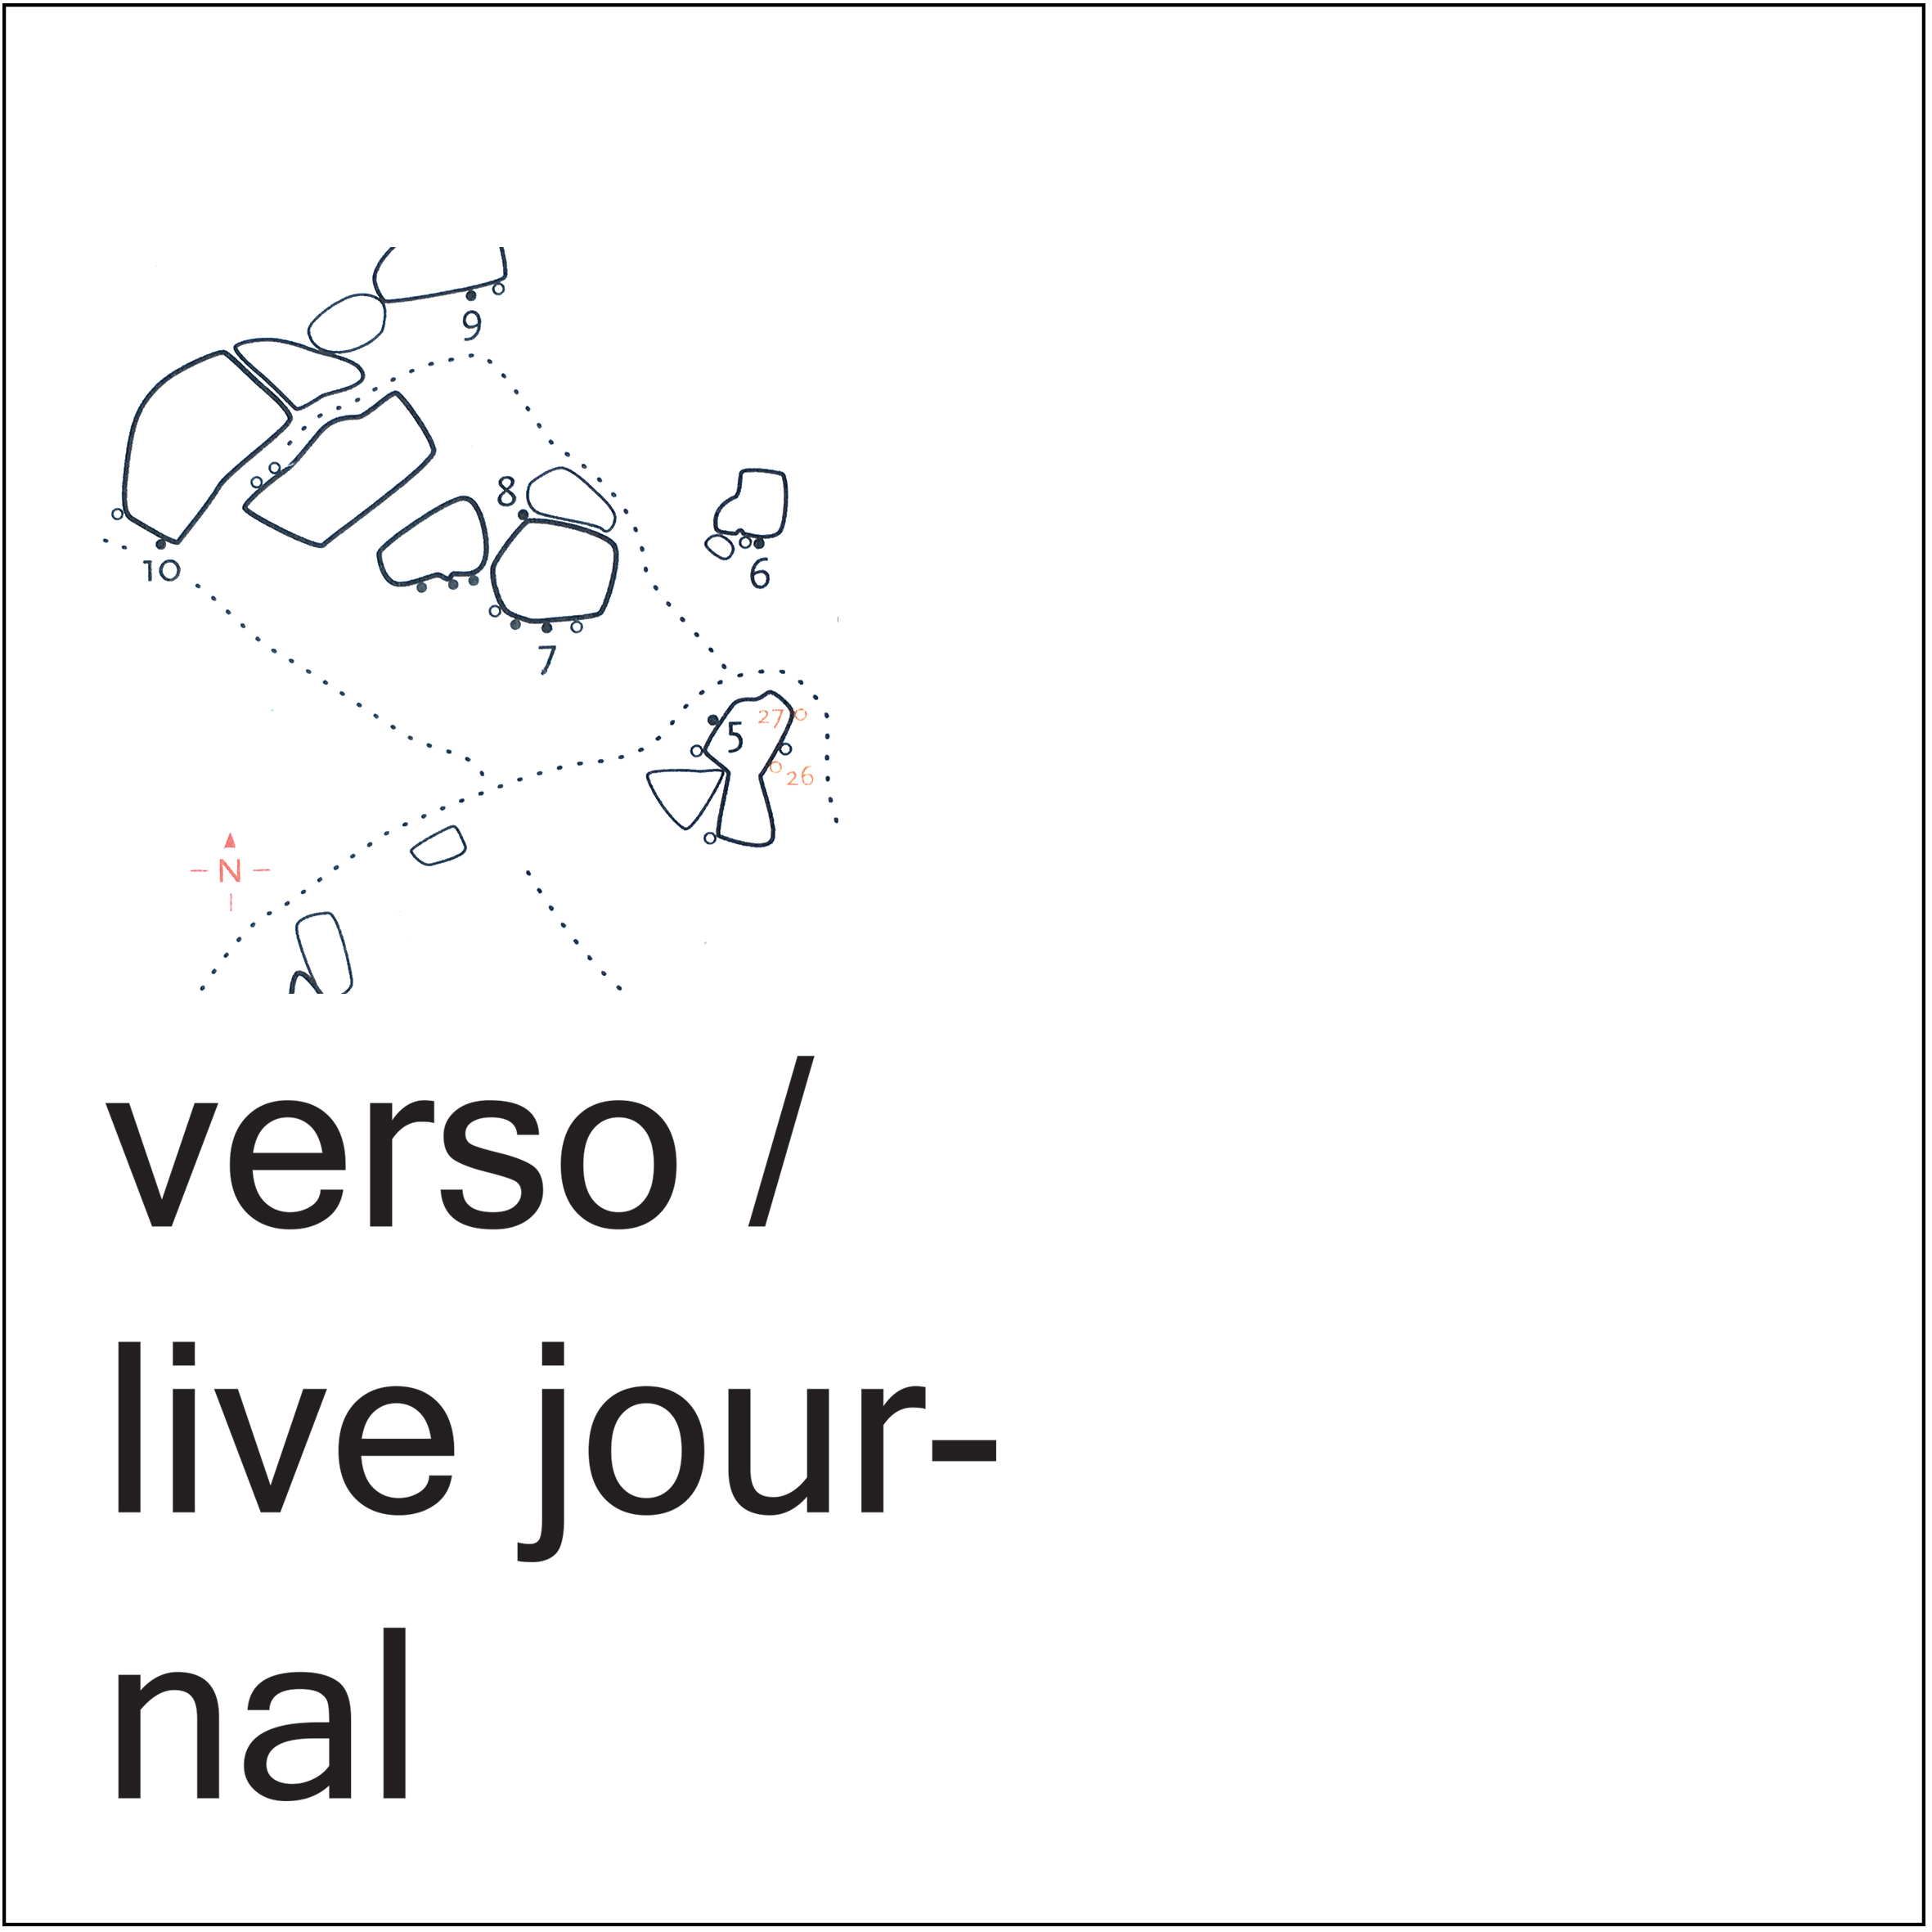 verso-vol3-no1-logo.jpg